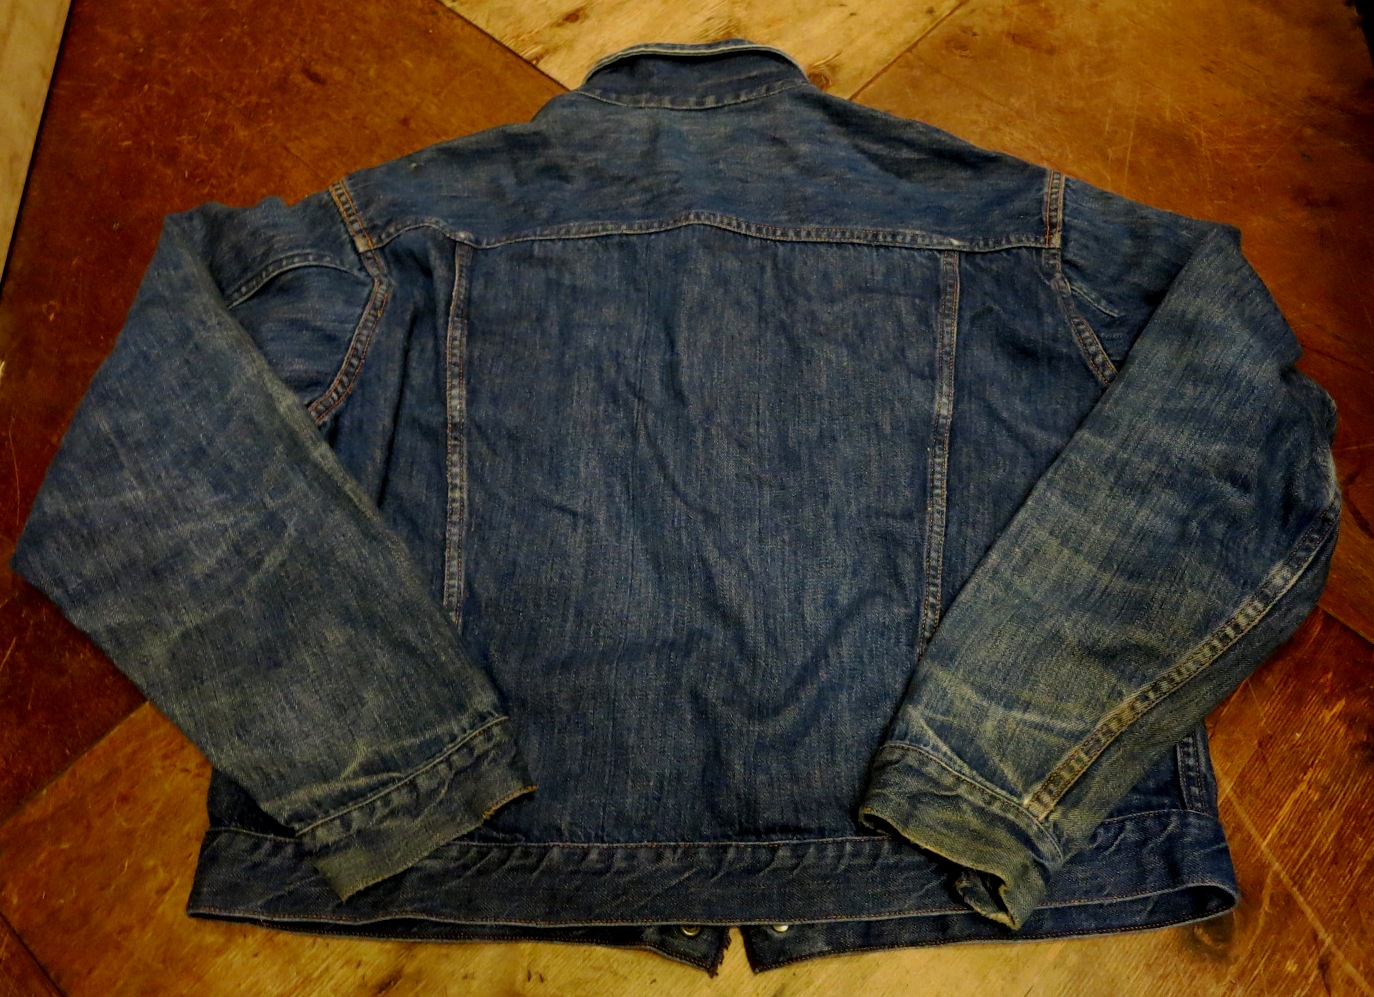 1/24(土)入荷!60'S~UNKNOWN 2POCKET DENIM JKT!_c0144020_1421139.jpg